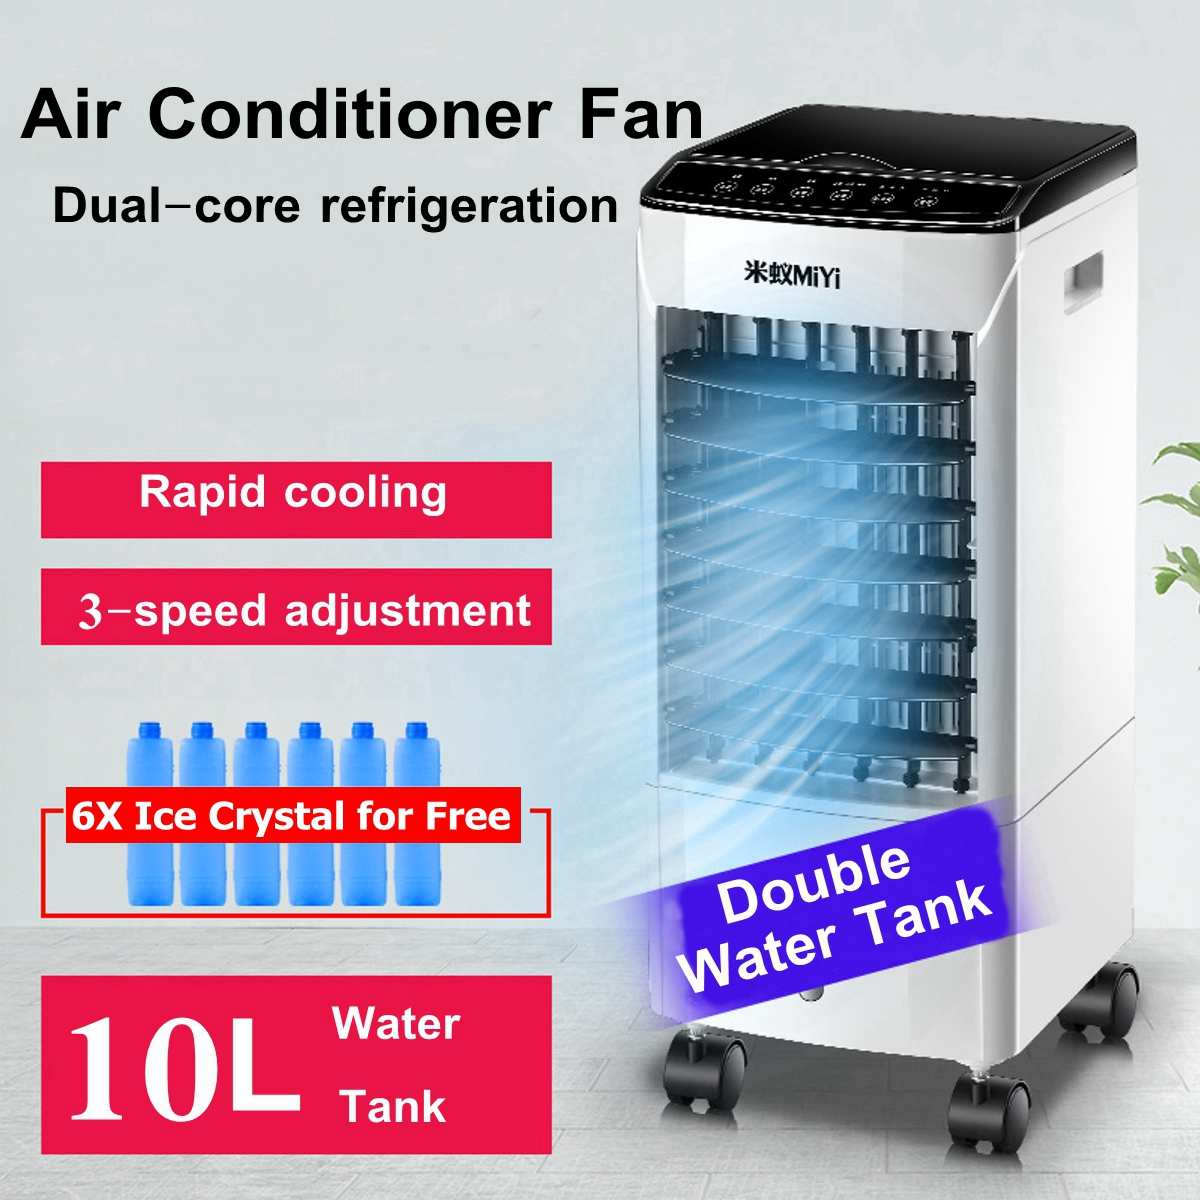 10L 220V Portable Air Conditioner Conditioning Fan Humidifier Cooler Air Conditioner Timed Cooling Fan Humidifier+6 Ice Crystal